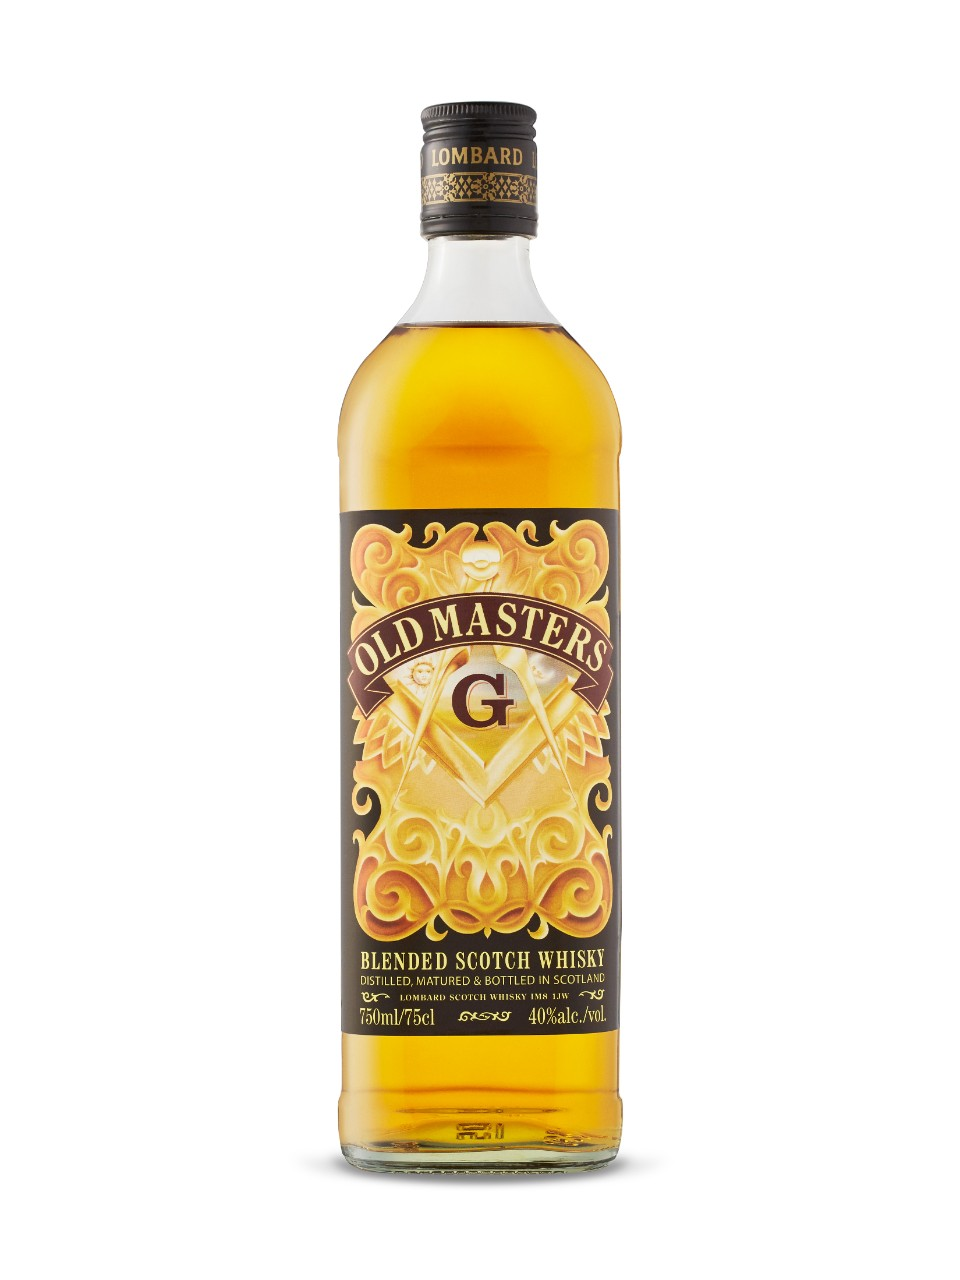 Lombard Old Masters Freemason Blended Scotch Whisky